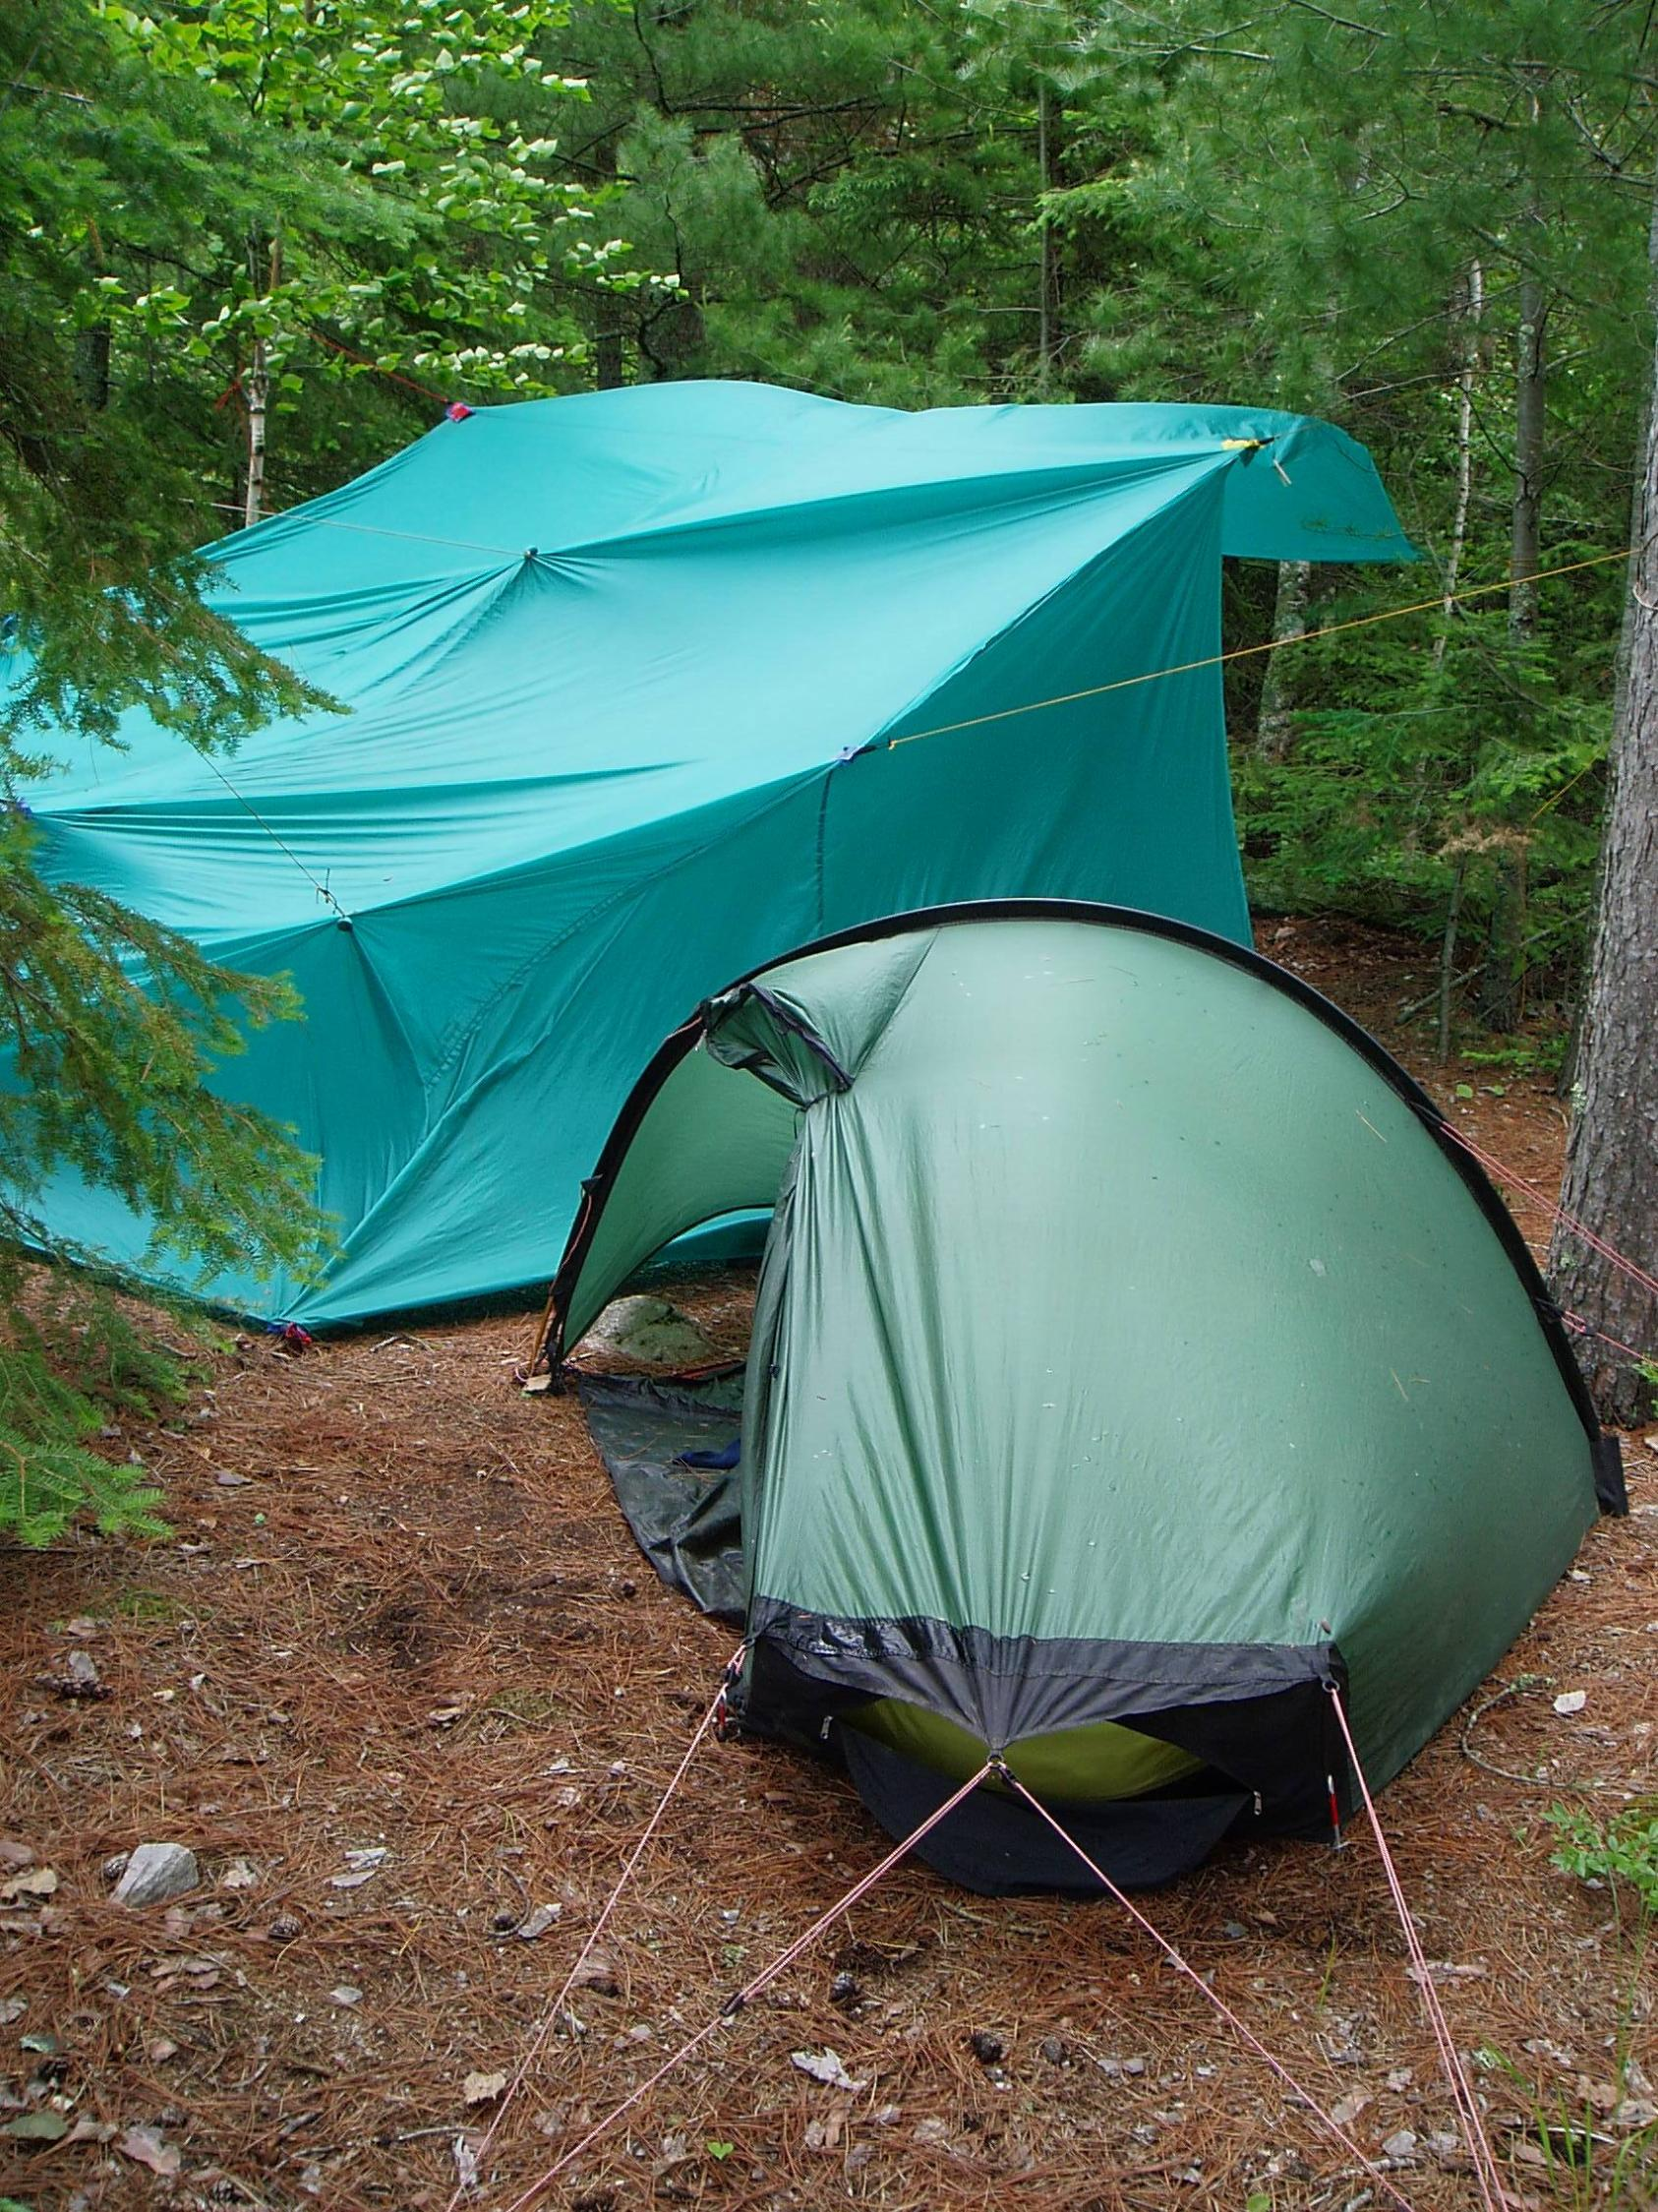 heavy wind and a small c& meant i had to pitch them close together.because i cook in the shelter what i would do is pitch the tent away from it to avoid ... & BWCA tents for solo trips Boundary Waters Gear Forum